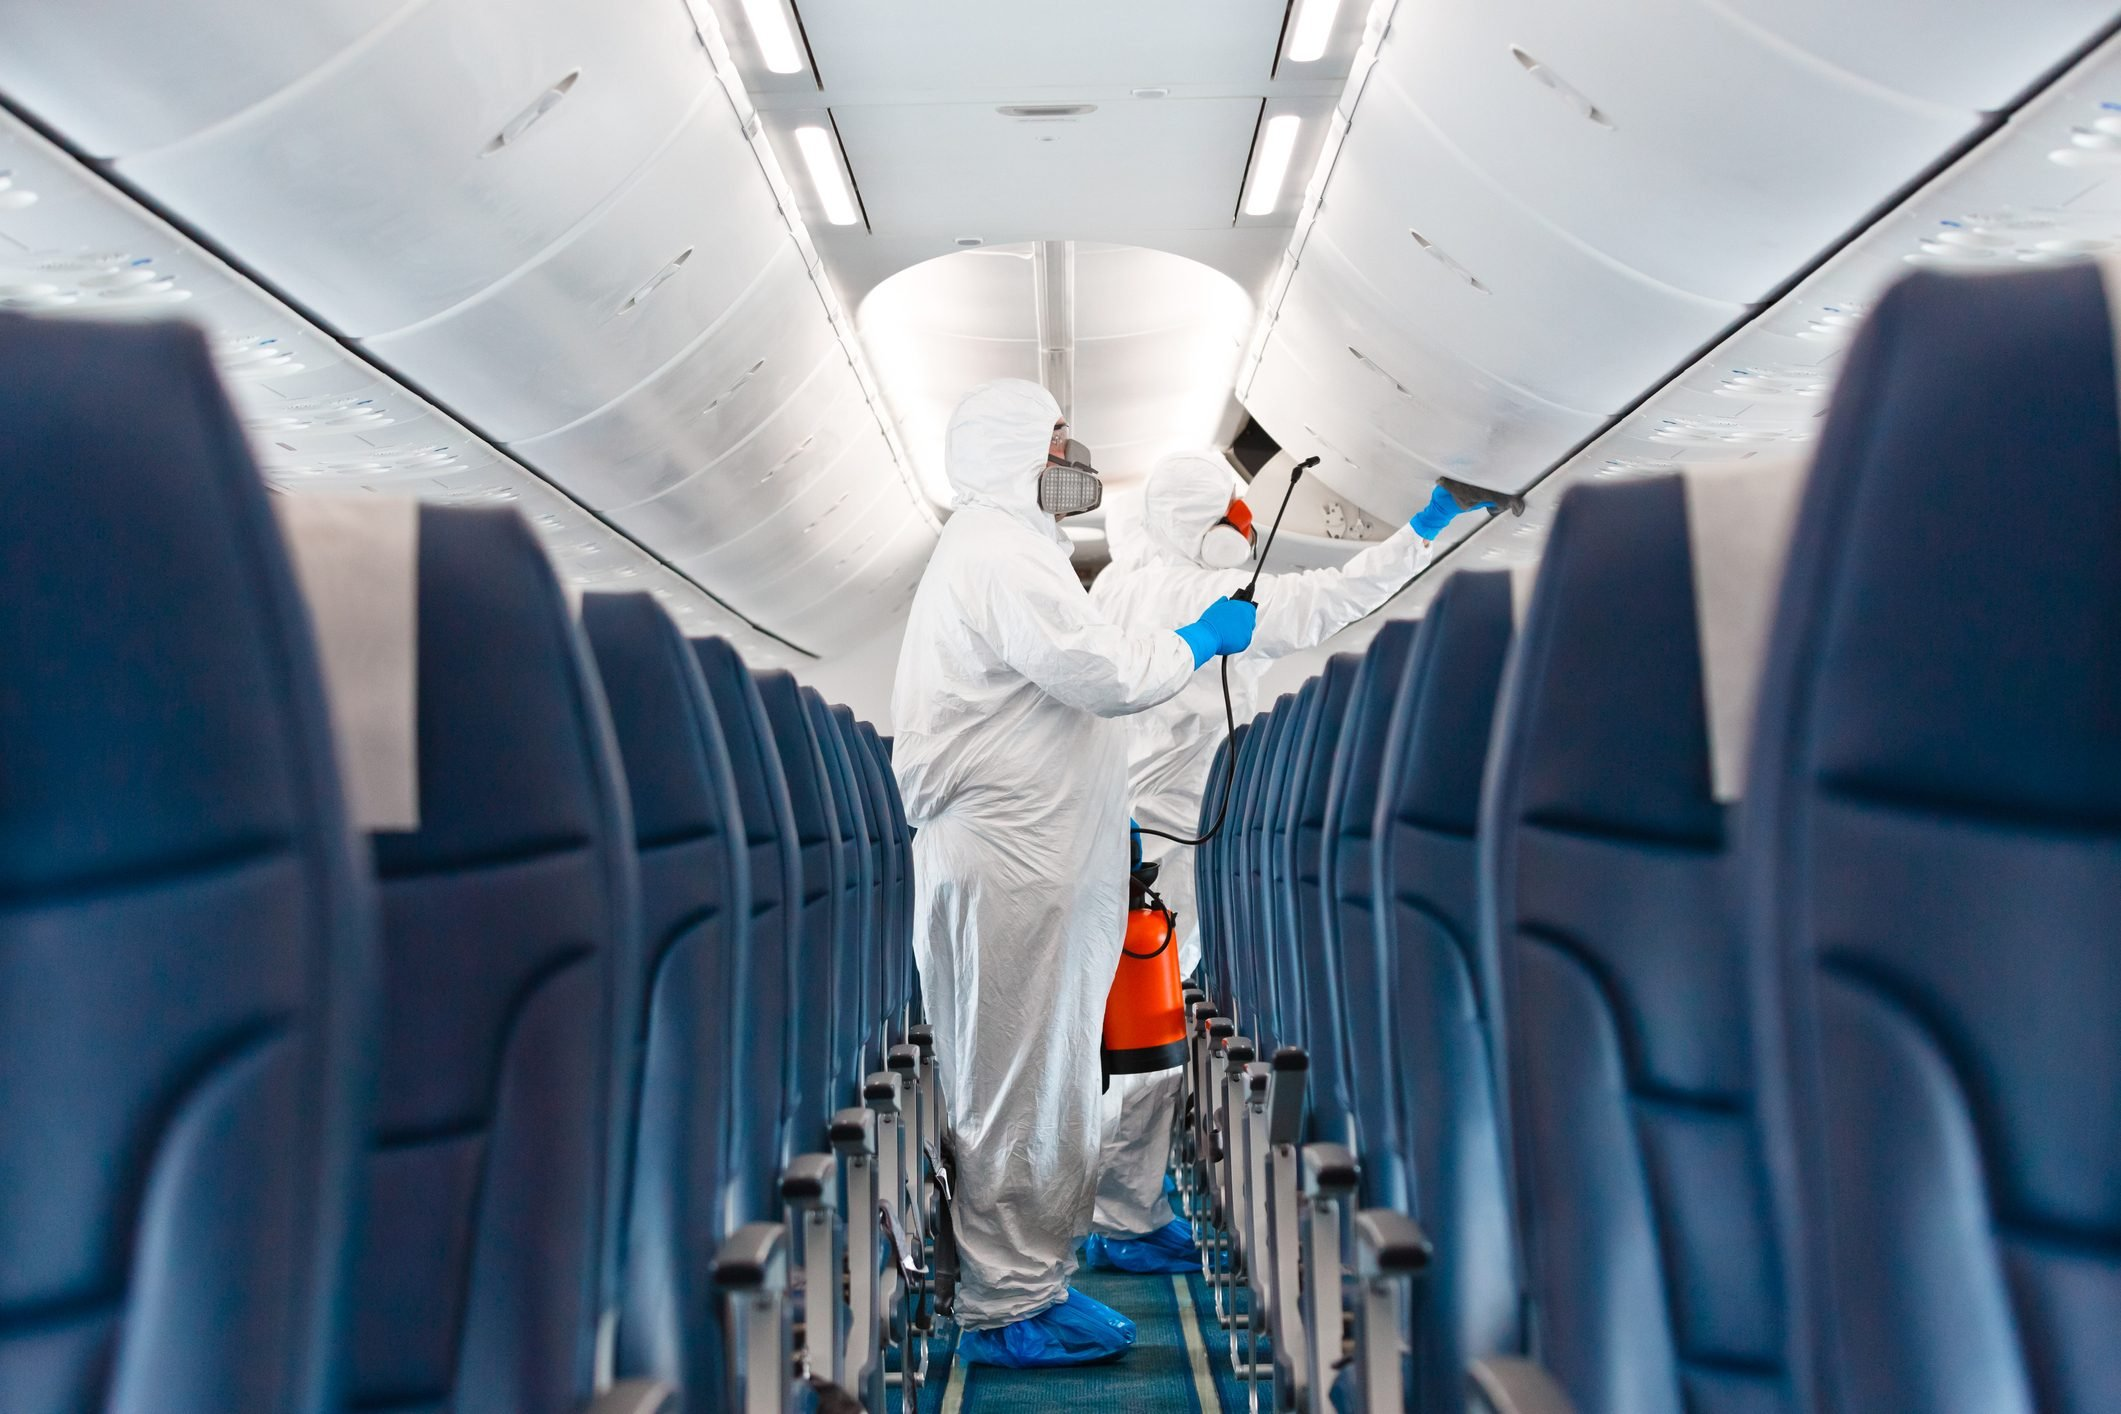 Airplane disinfection due to COVID-19